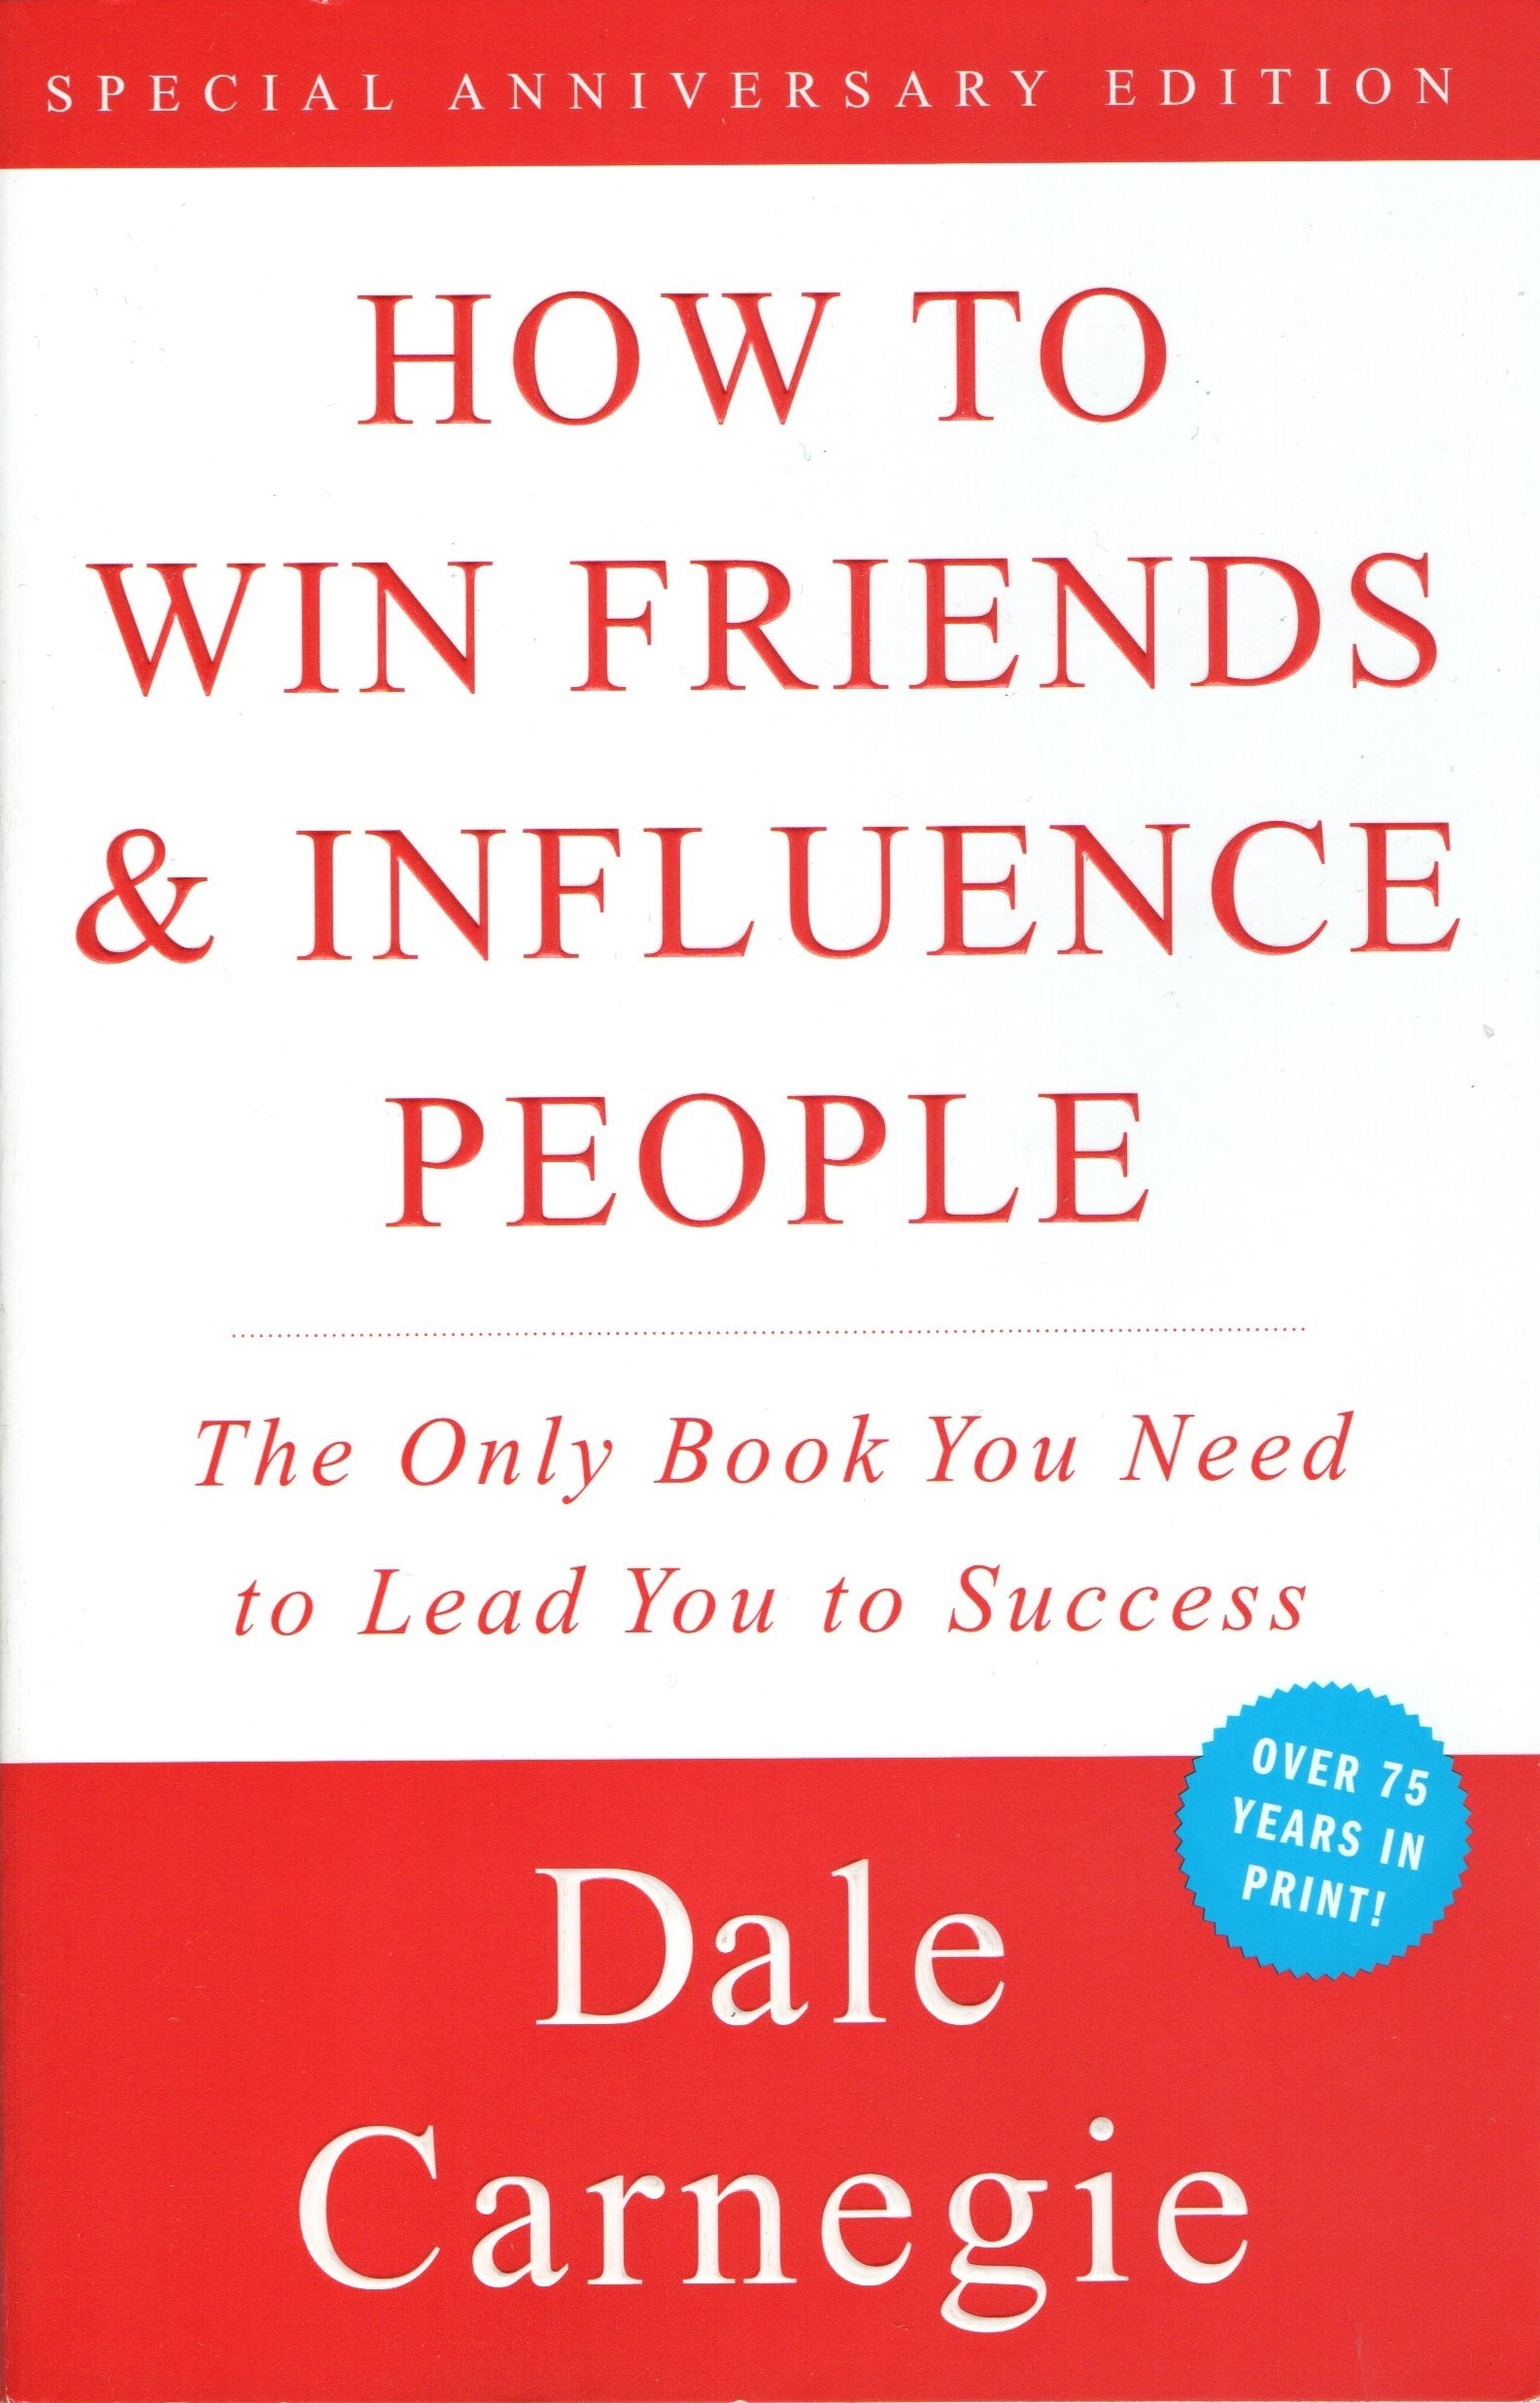 how to win friends and influence people essay How to win friends & influence people [dale carnegie] on amazoncom free shipping on qualifying offers you can go after the job you want and get it you can take the job you have and improve it you can take any situation and make it work for you dale carnegie's rock-solid.